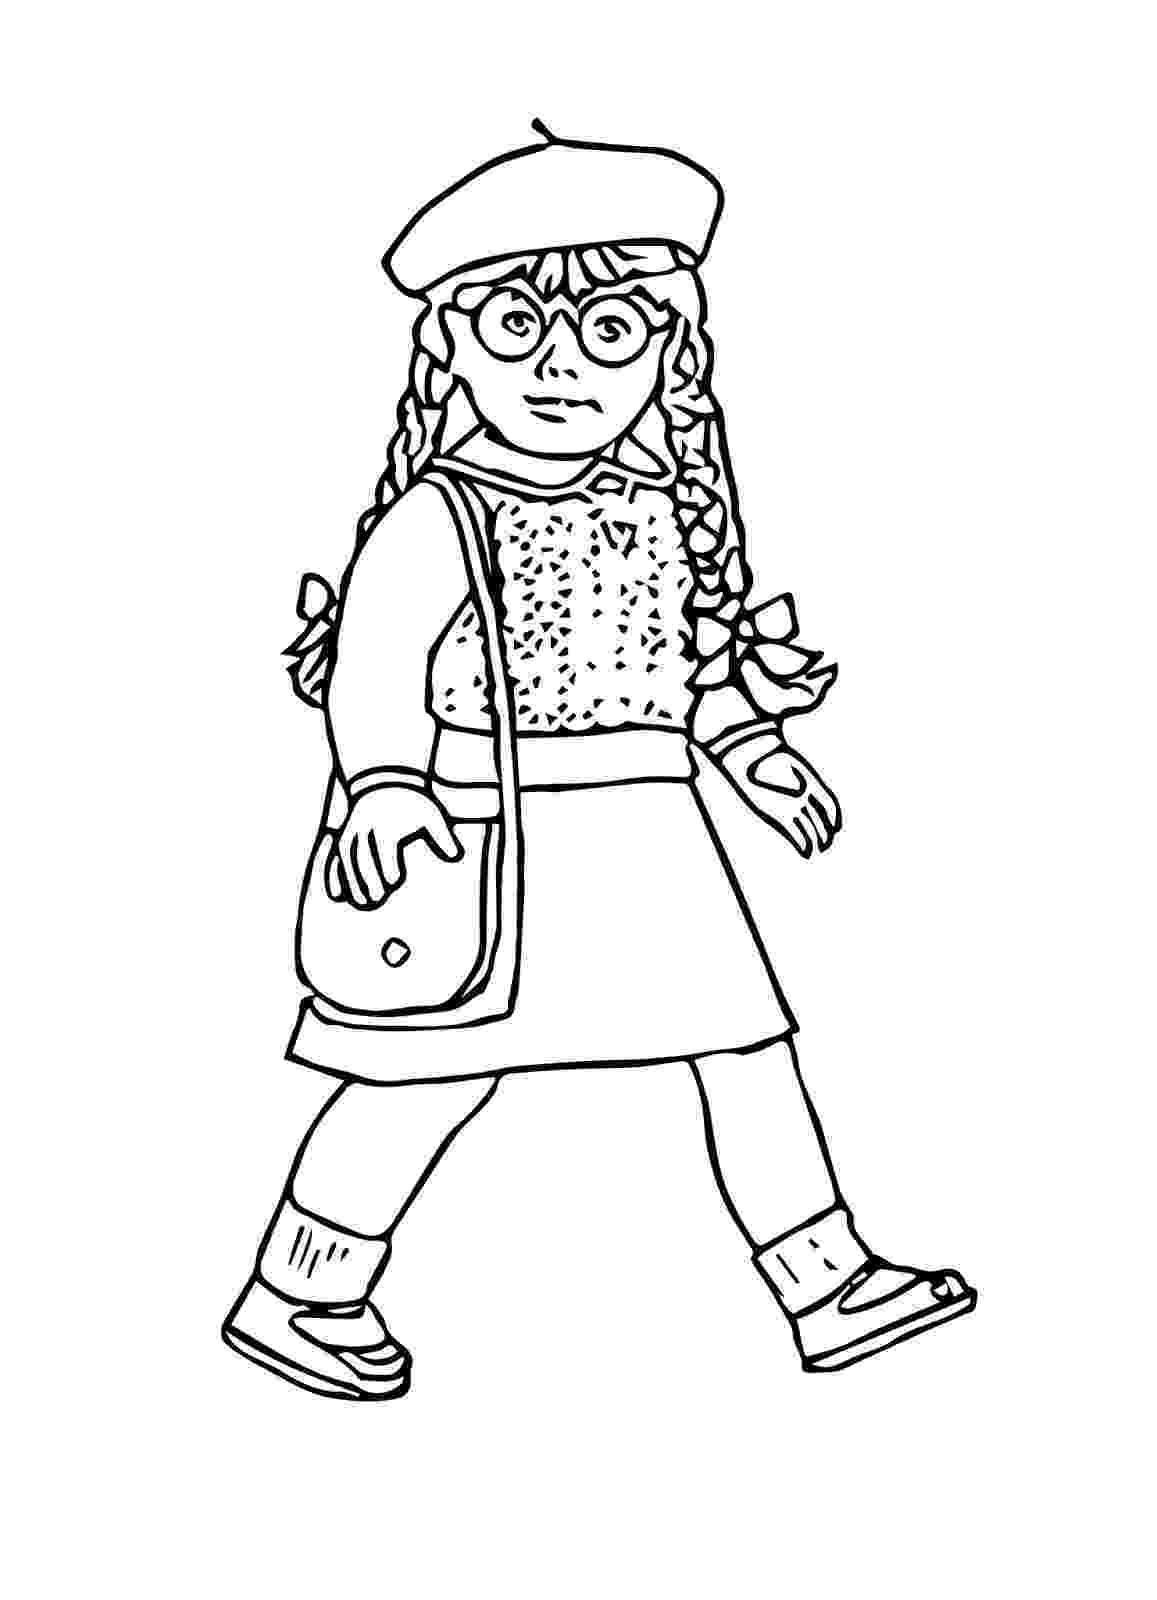 girl colouring pages moxie coloring pages for girls to print for free girl colouring pages